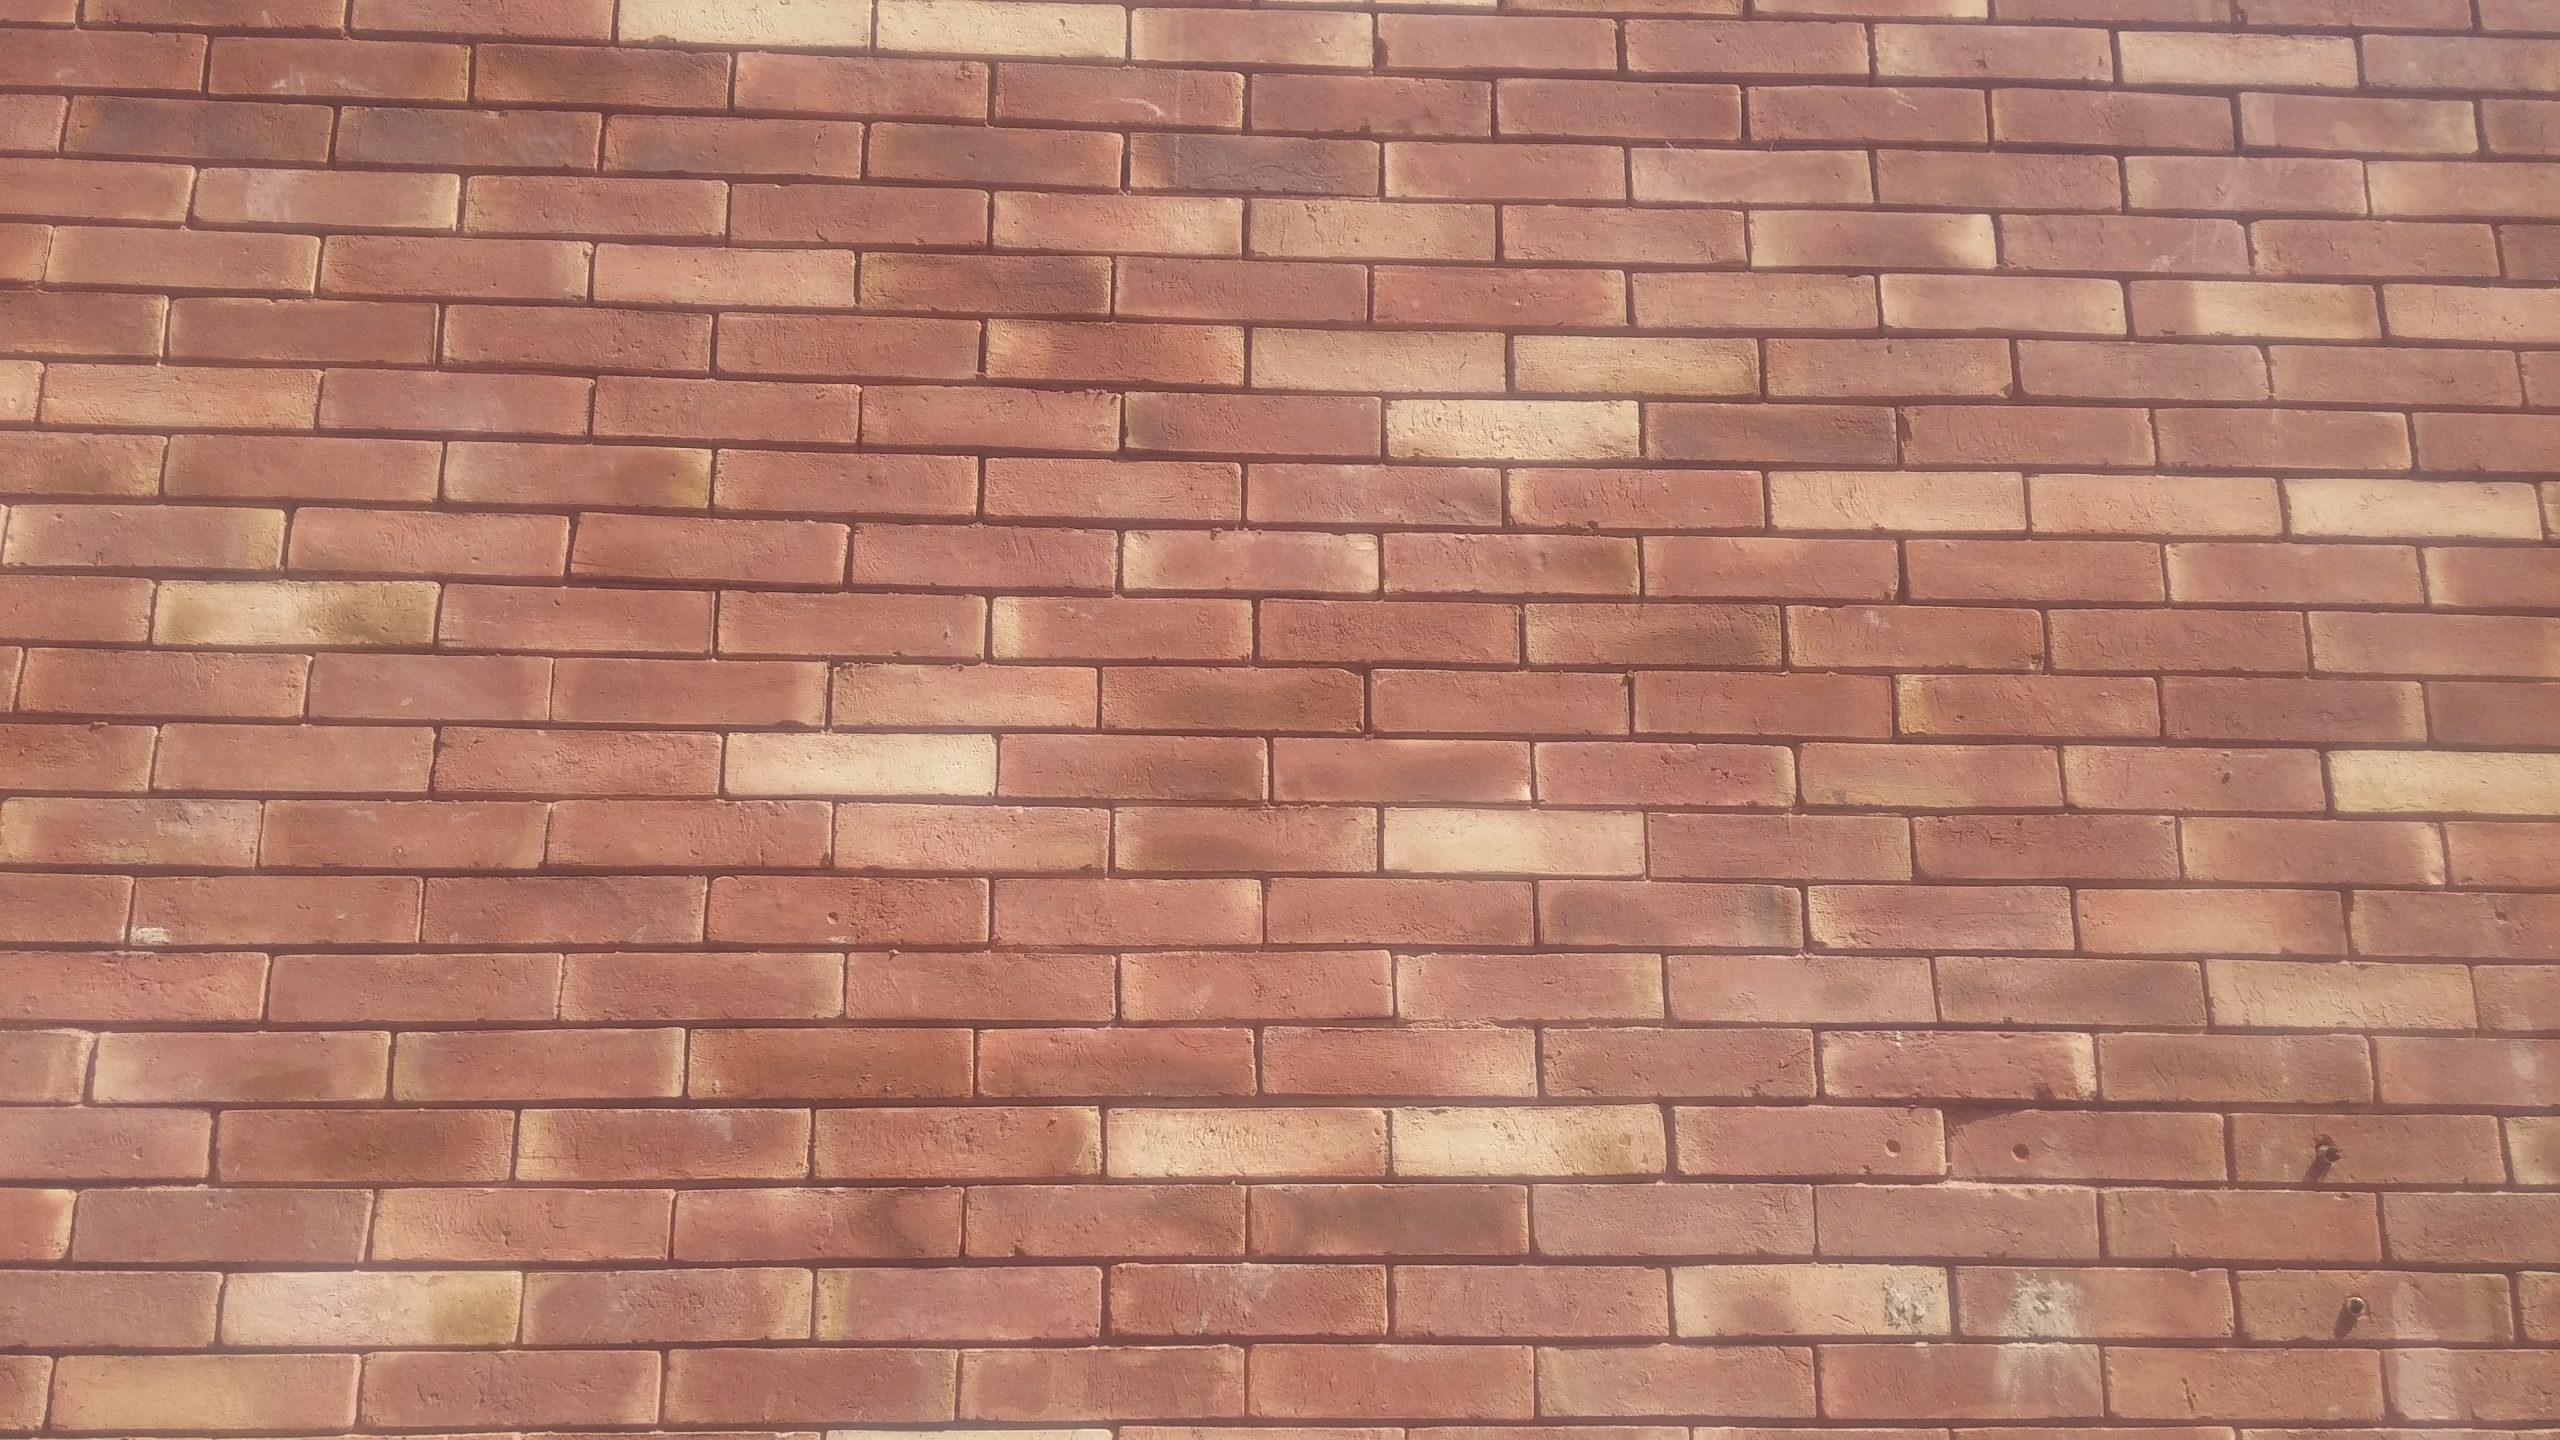 Gutka Tile Rate in Pakistan Pak Clay Tiles Lahore Brick Tiles Price in Pakistan Images (5)